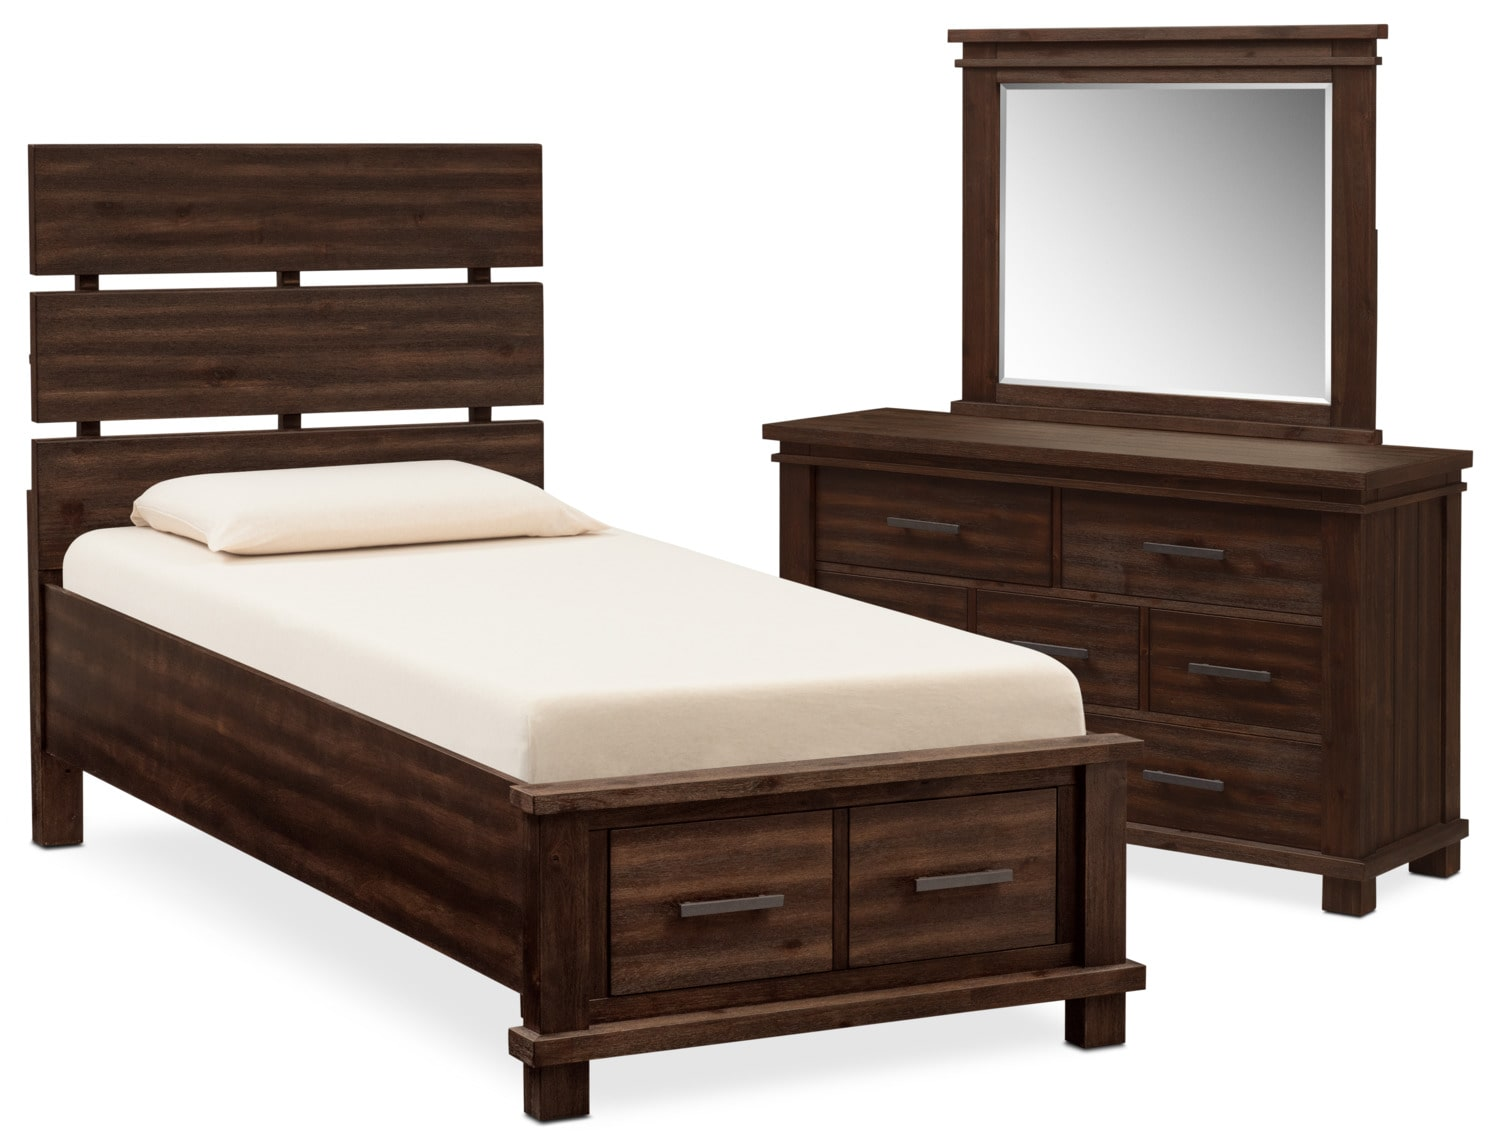 Kids Furniture - Tribeca Youth 5-Piece Full Plank Bedroom Set with 2 Underbed Drawers - Tobacco